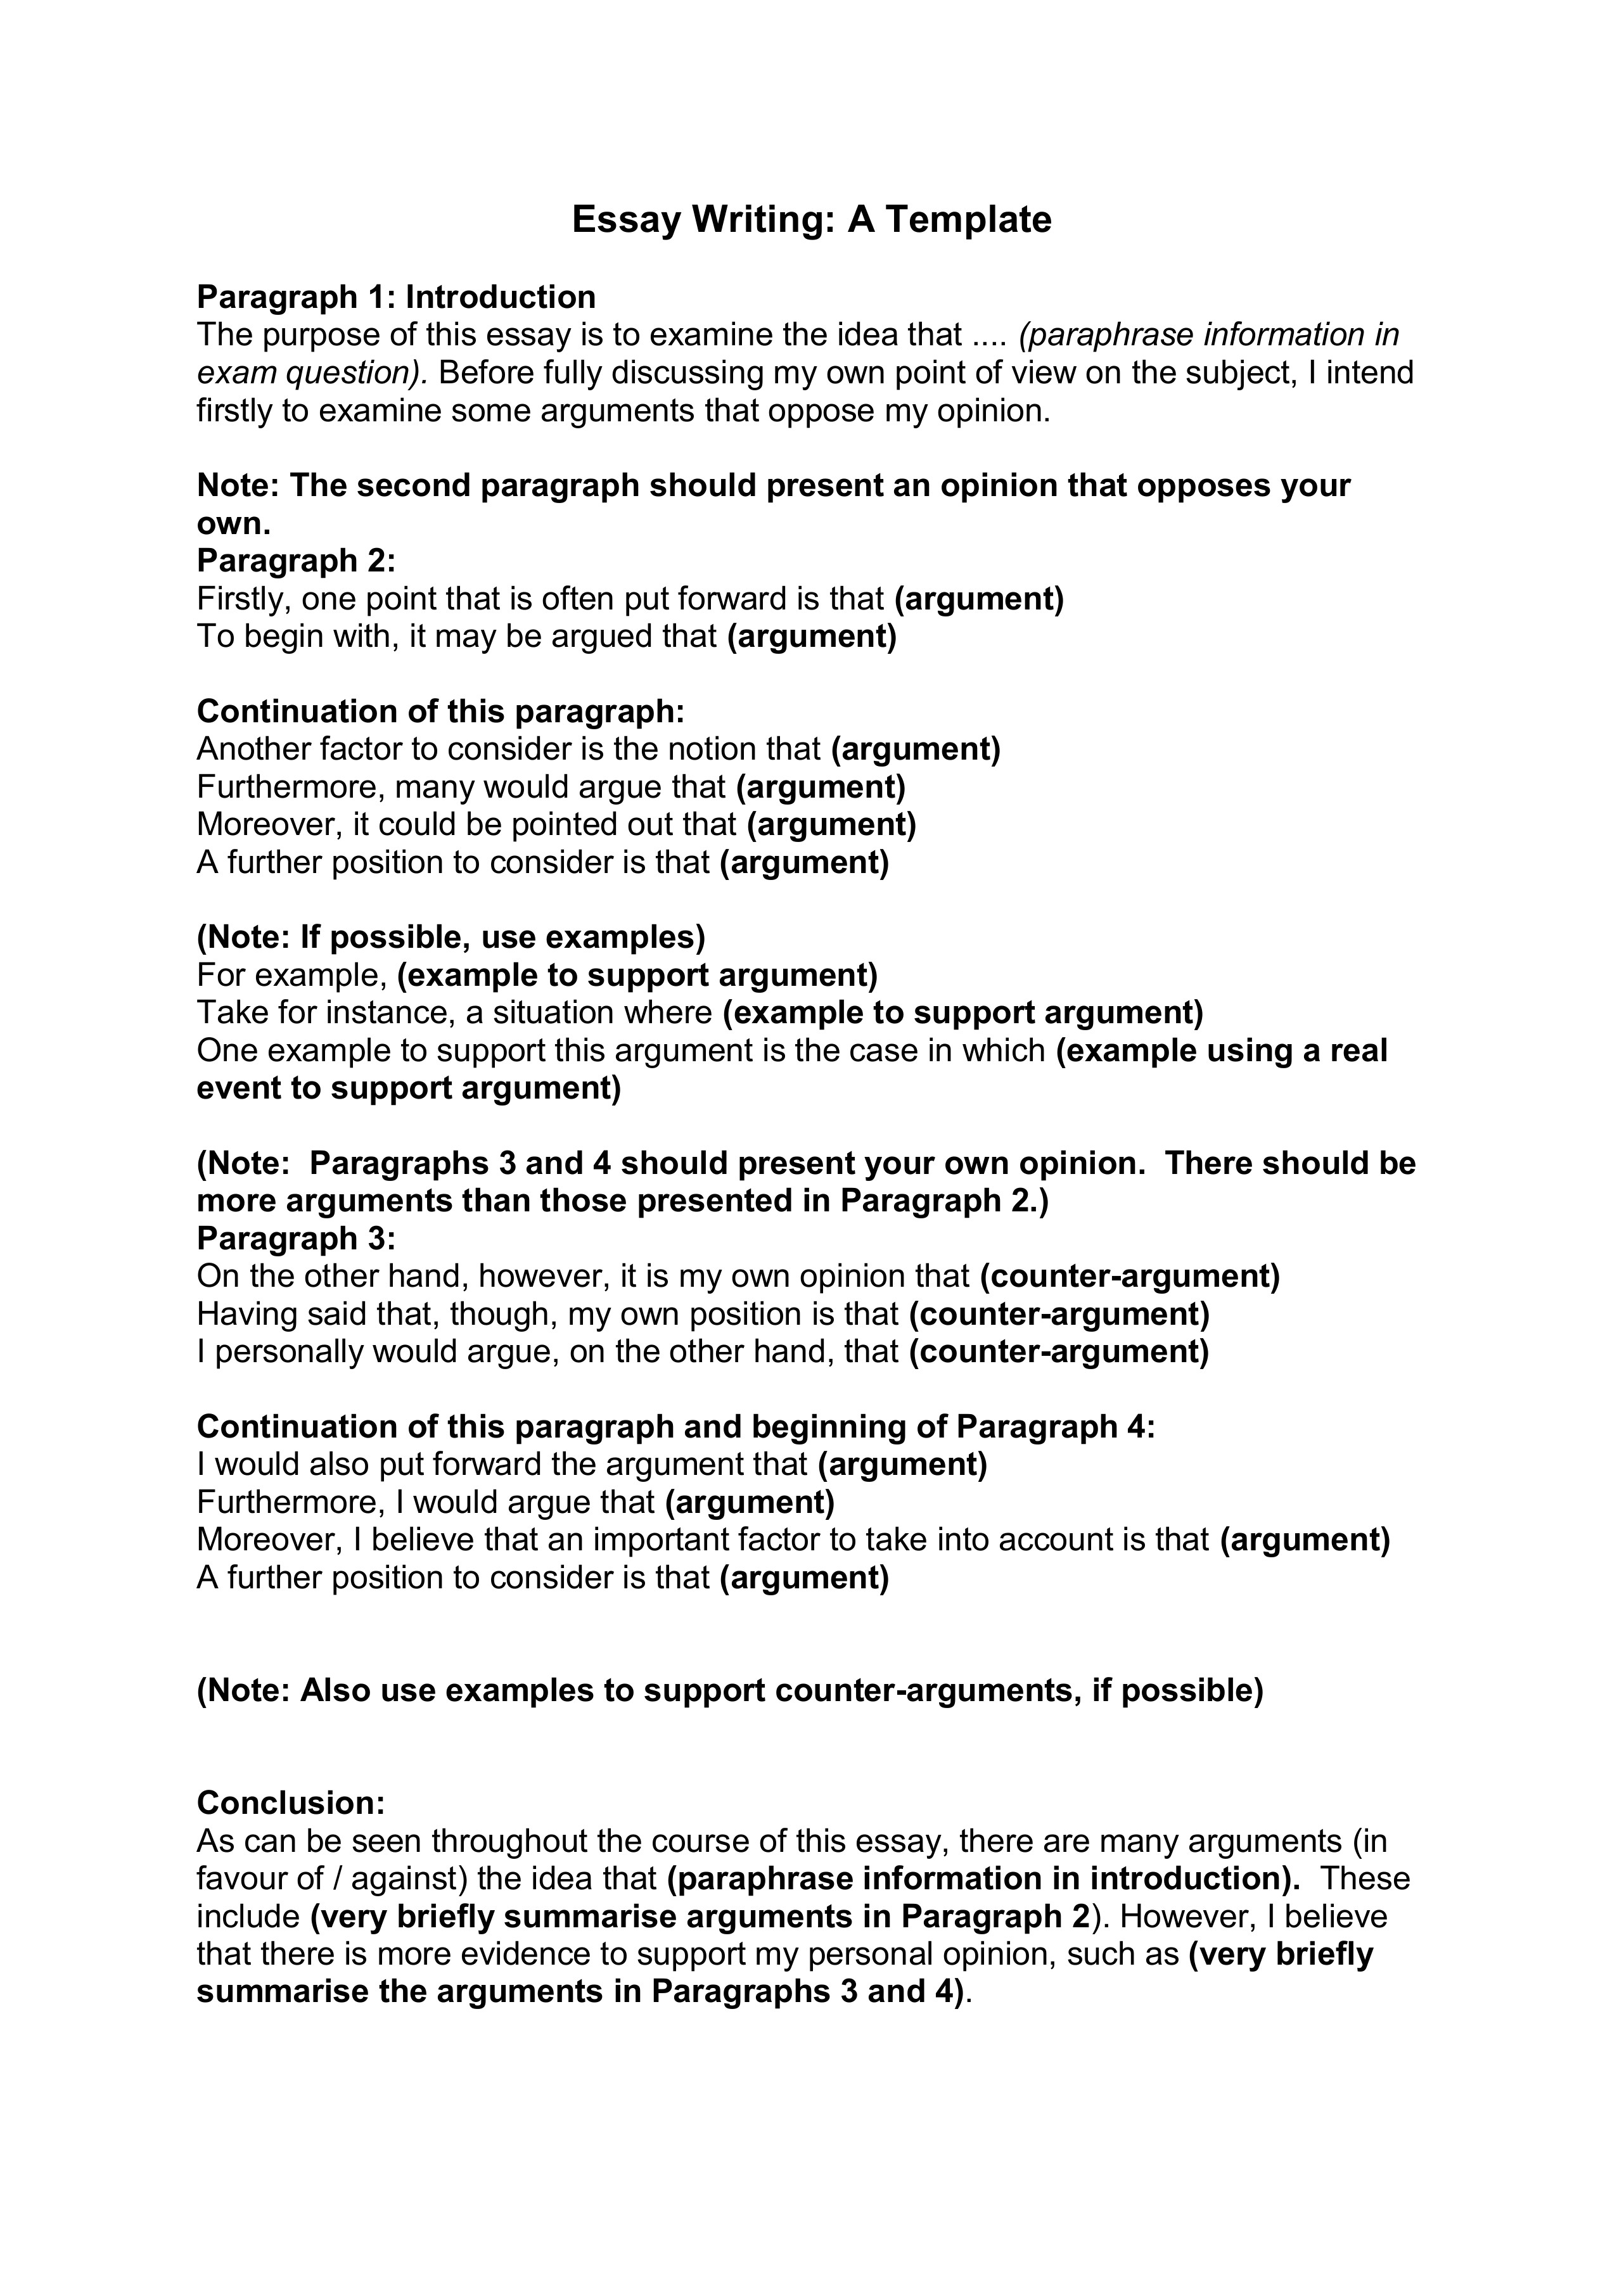 Buy a college paper template for word 2013